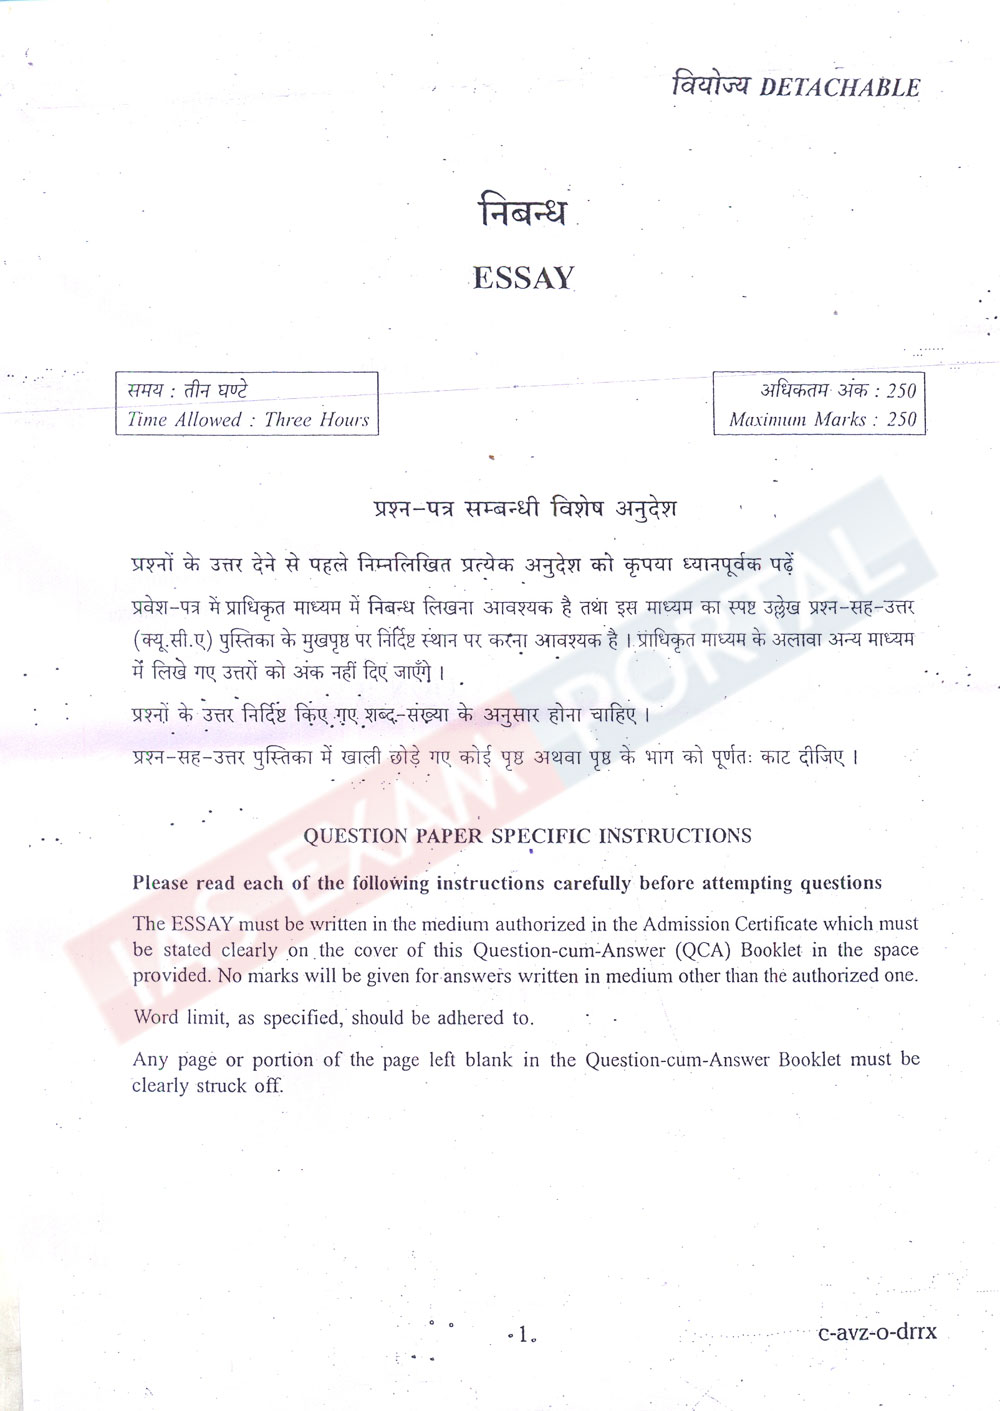 An Essay On Science The Importance Of Learning English Essay Section B Should The Government  Provide Health Care Essay With Essays Examples English Download Upsc Ias  Mains  High School Entrance Essay Examples also Example Of Essay Writing In English The Importance Of Learning English Essay Section B Should The  Essay For High School Students